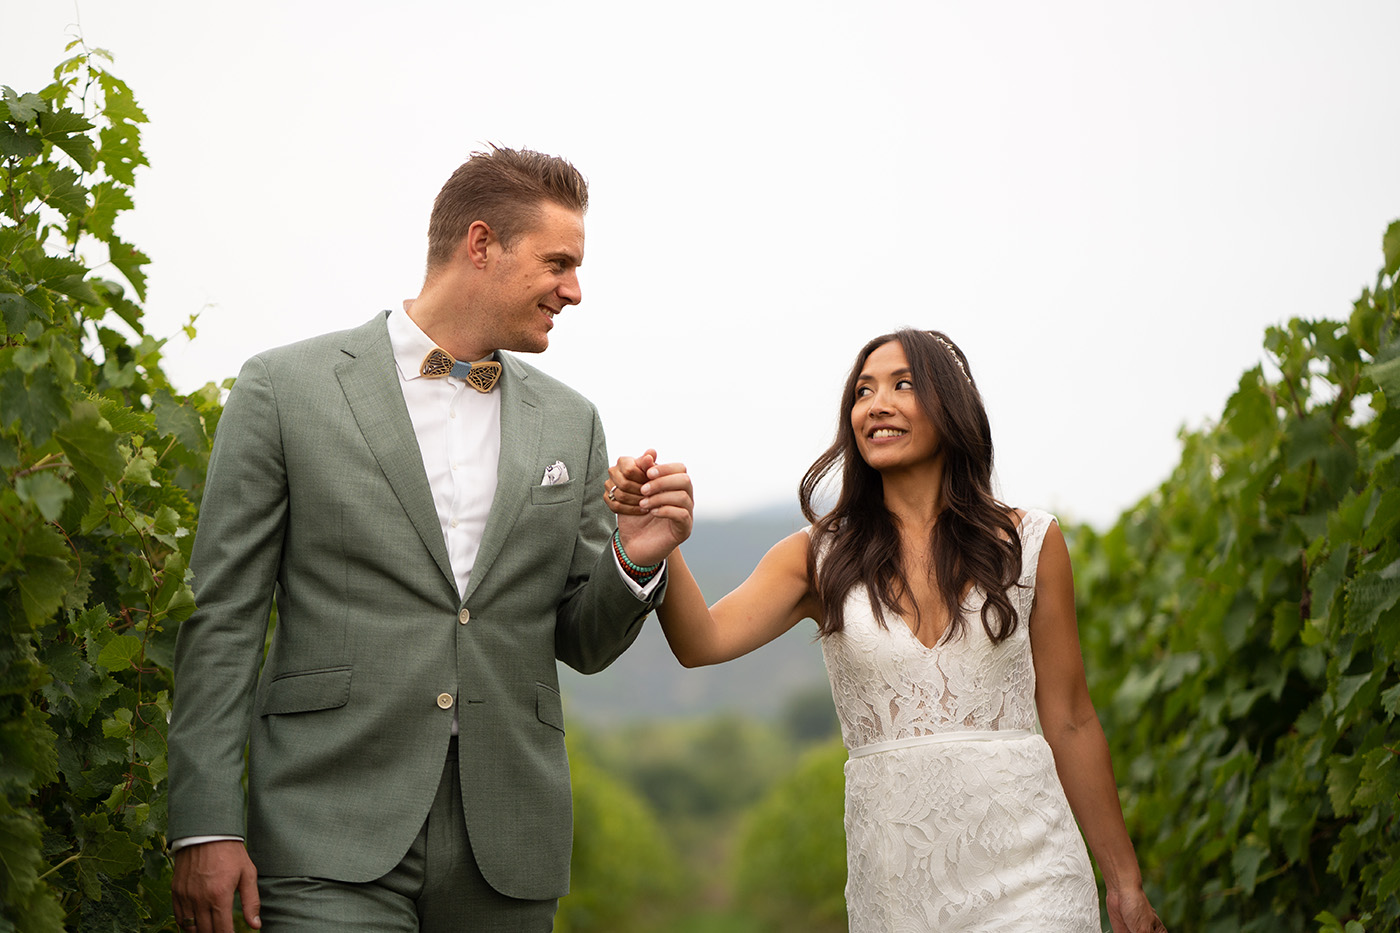 Vows Renewal Photographer in Tuscany: Eva and Erwin, celebrating  5th year of marriage